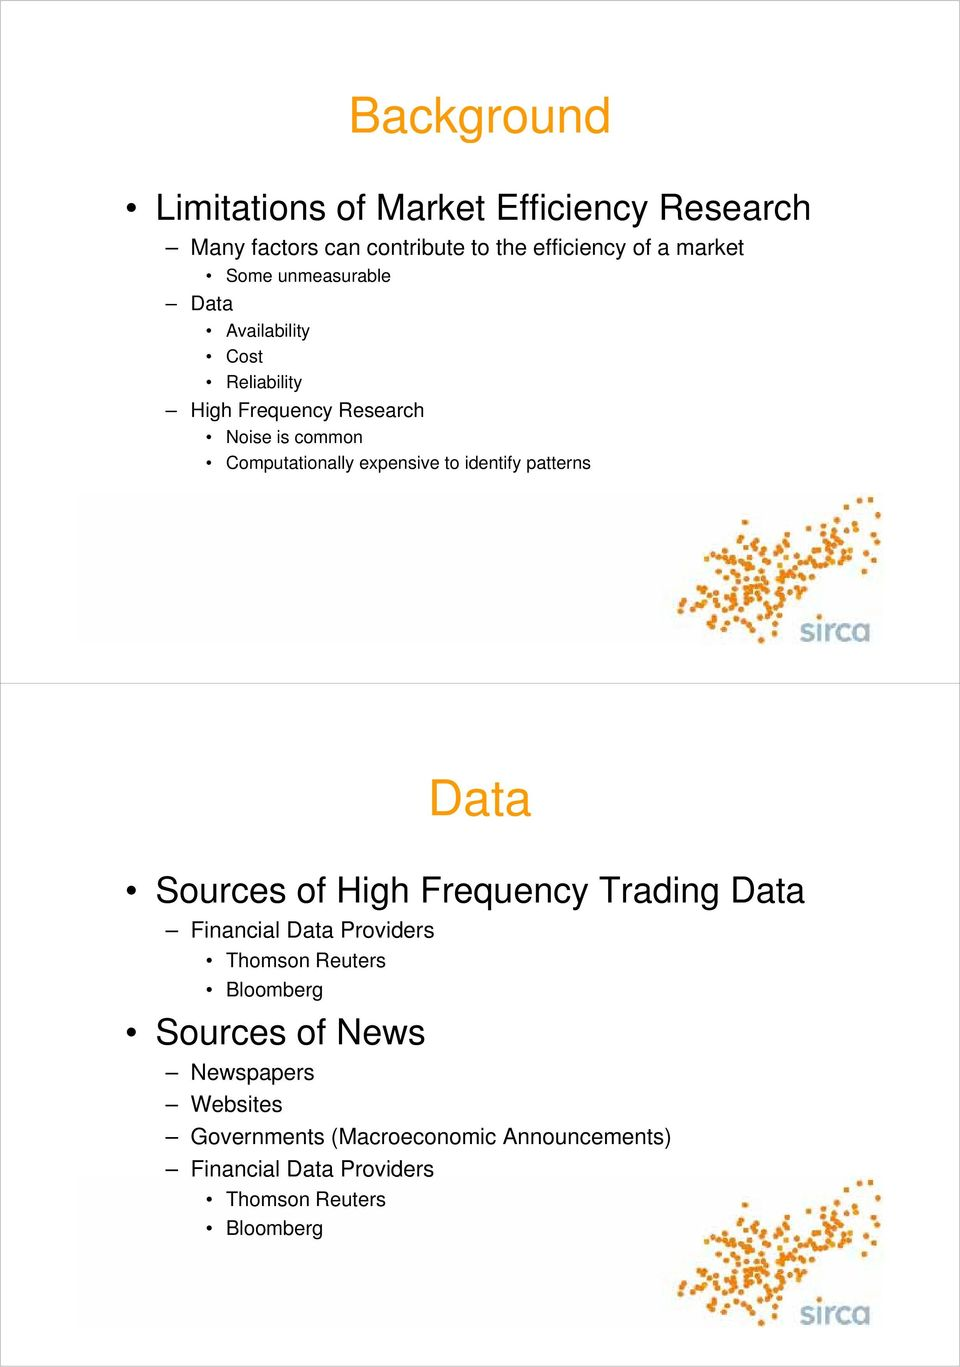 identify patterns Data Sources of High Frequency Trading Data Financial Data Providers Thomson Reuters Bloomberg